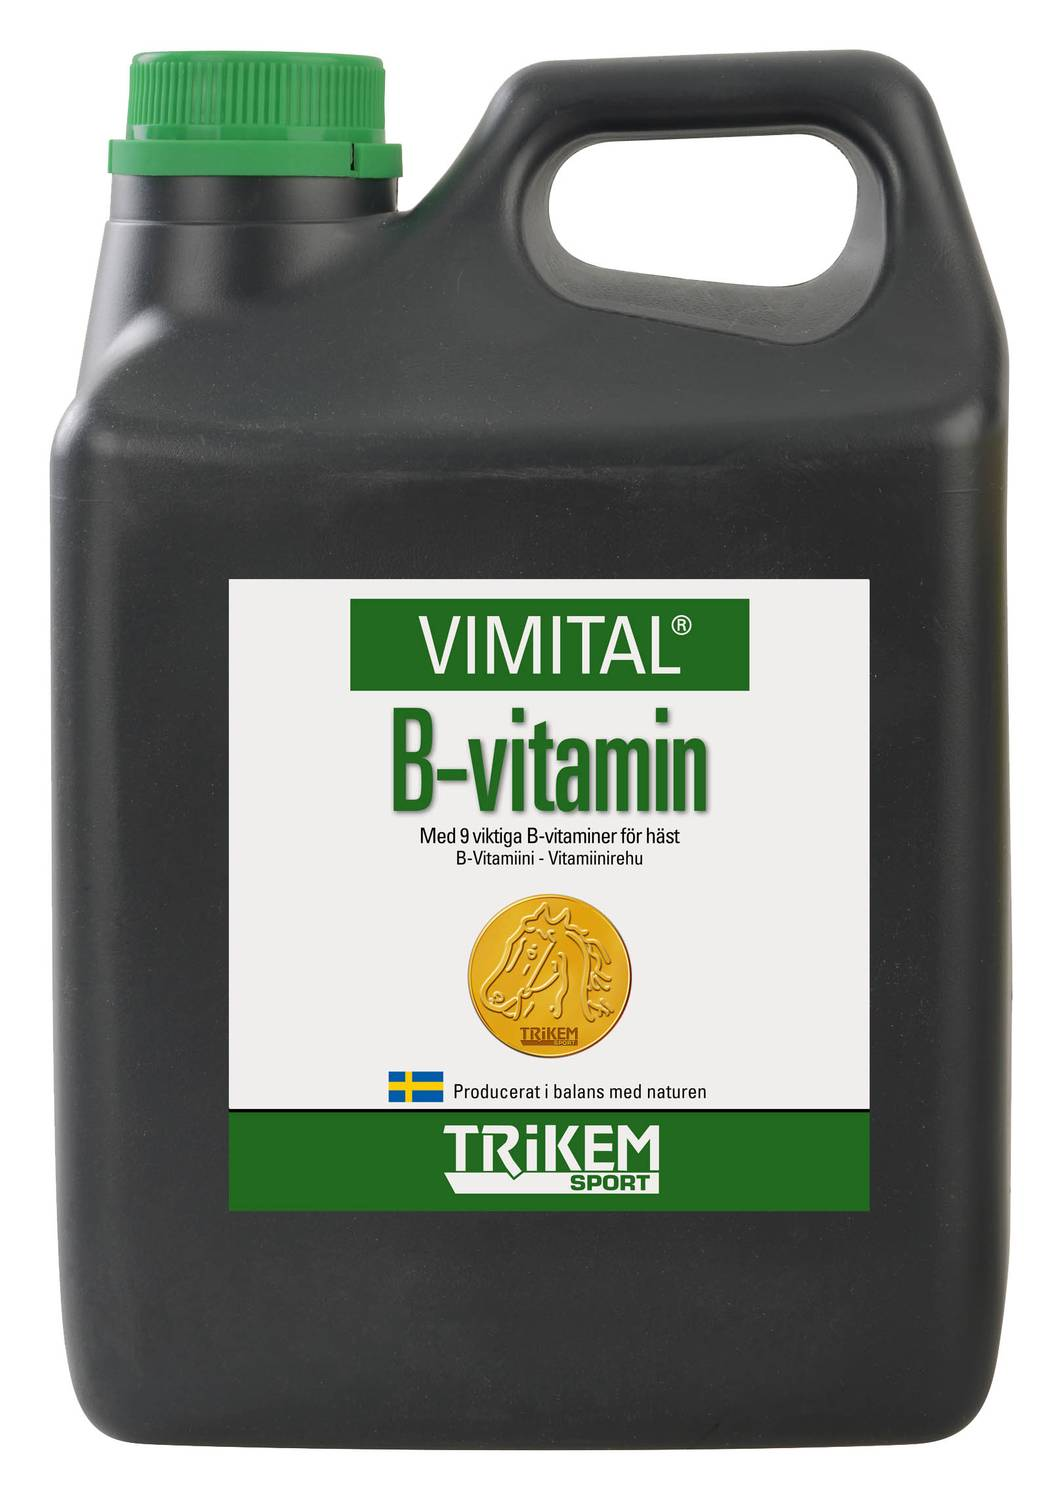 VIMITAL B-VITAMIN